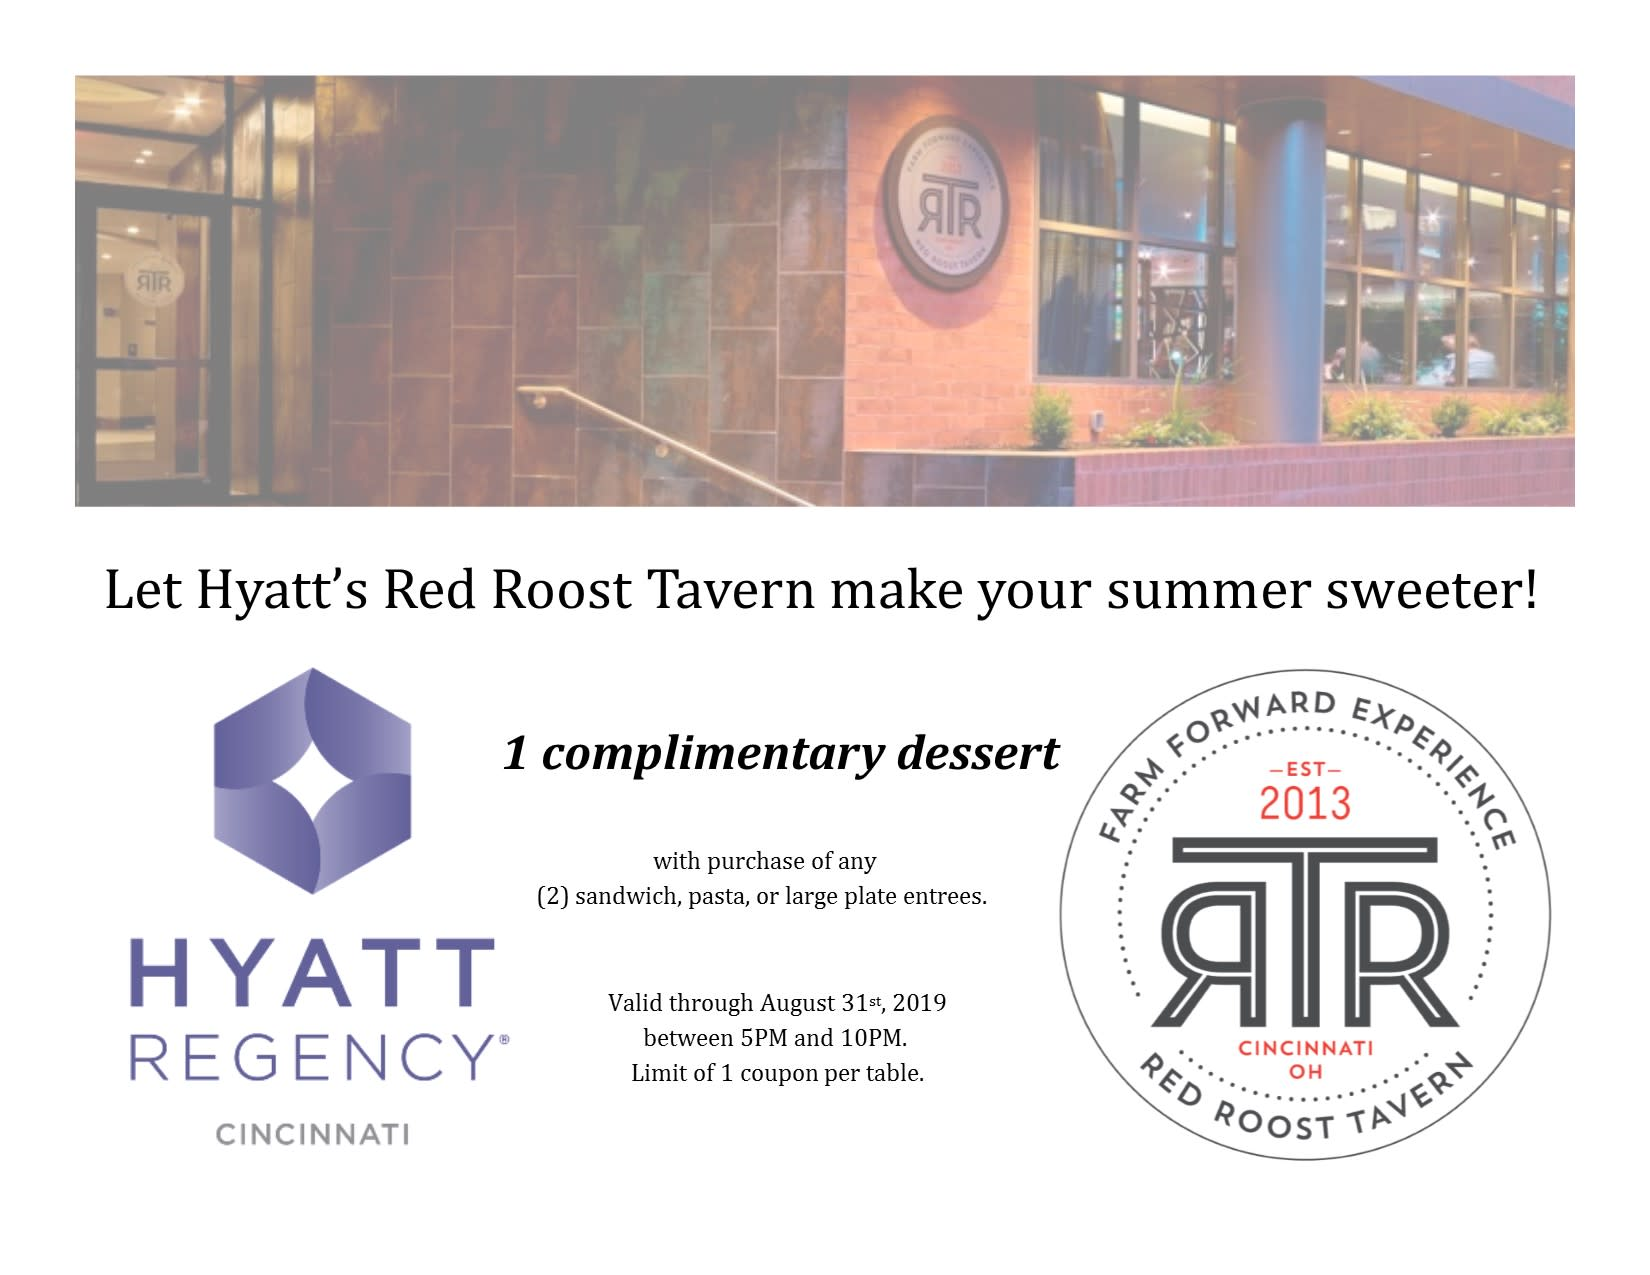 Make Your Summer Sweeter at RTR!